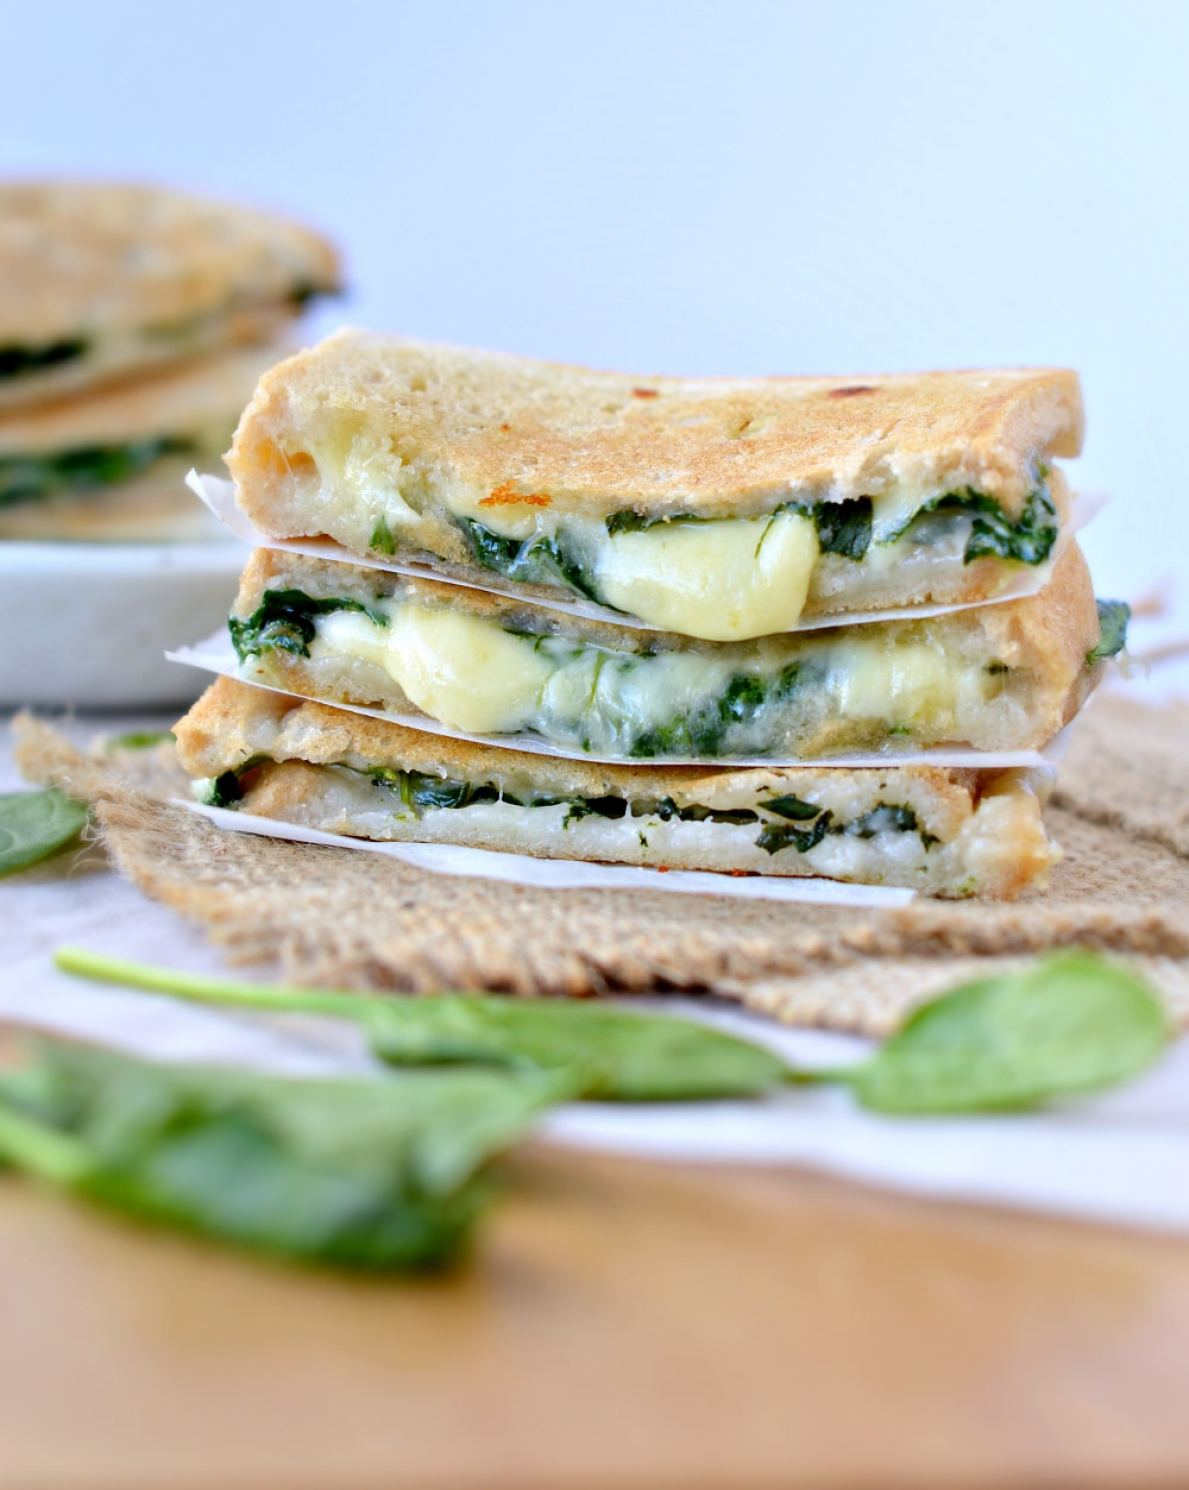 Spinach Grilled Cheese Sandwich recipe